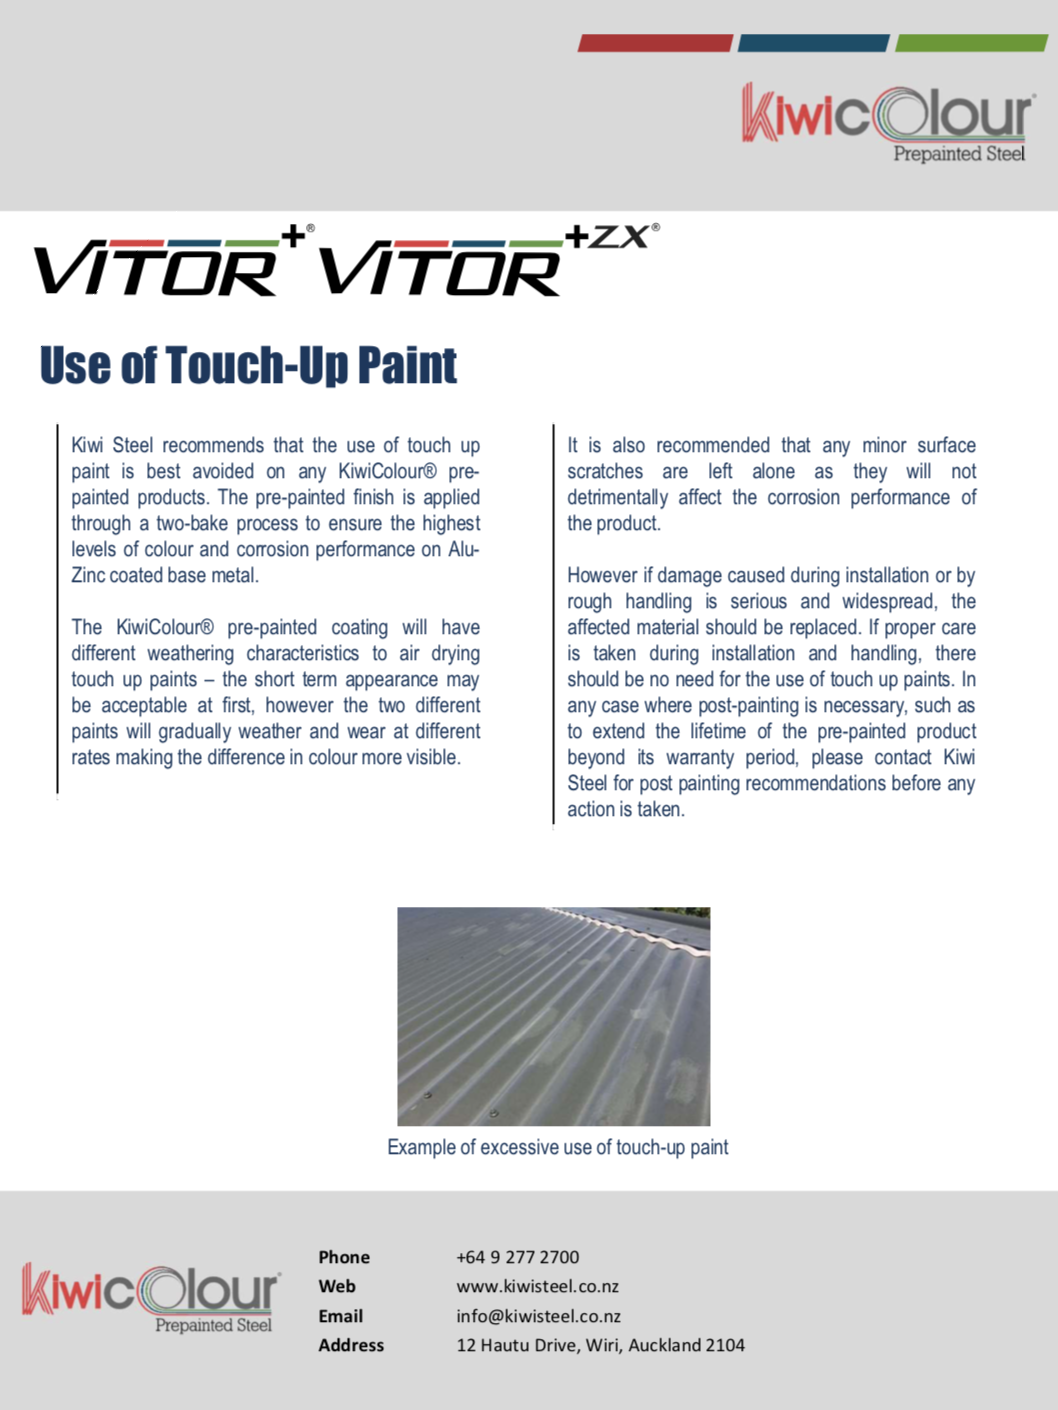 KiwiColour Pre-Painted Steel – Use-of Touch-Up Paint Image.png